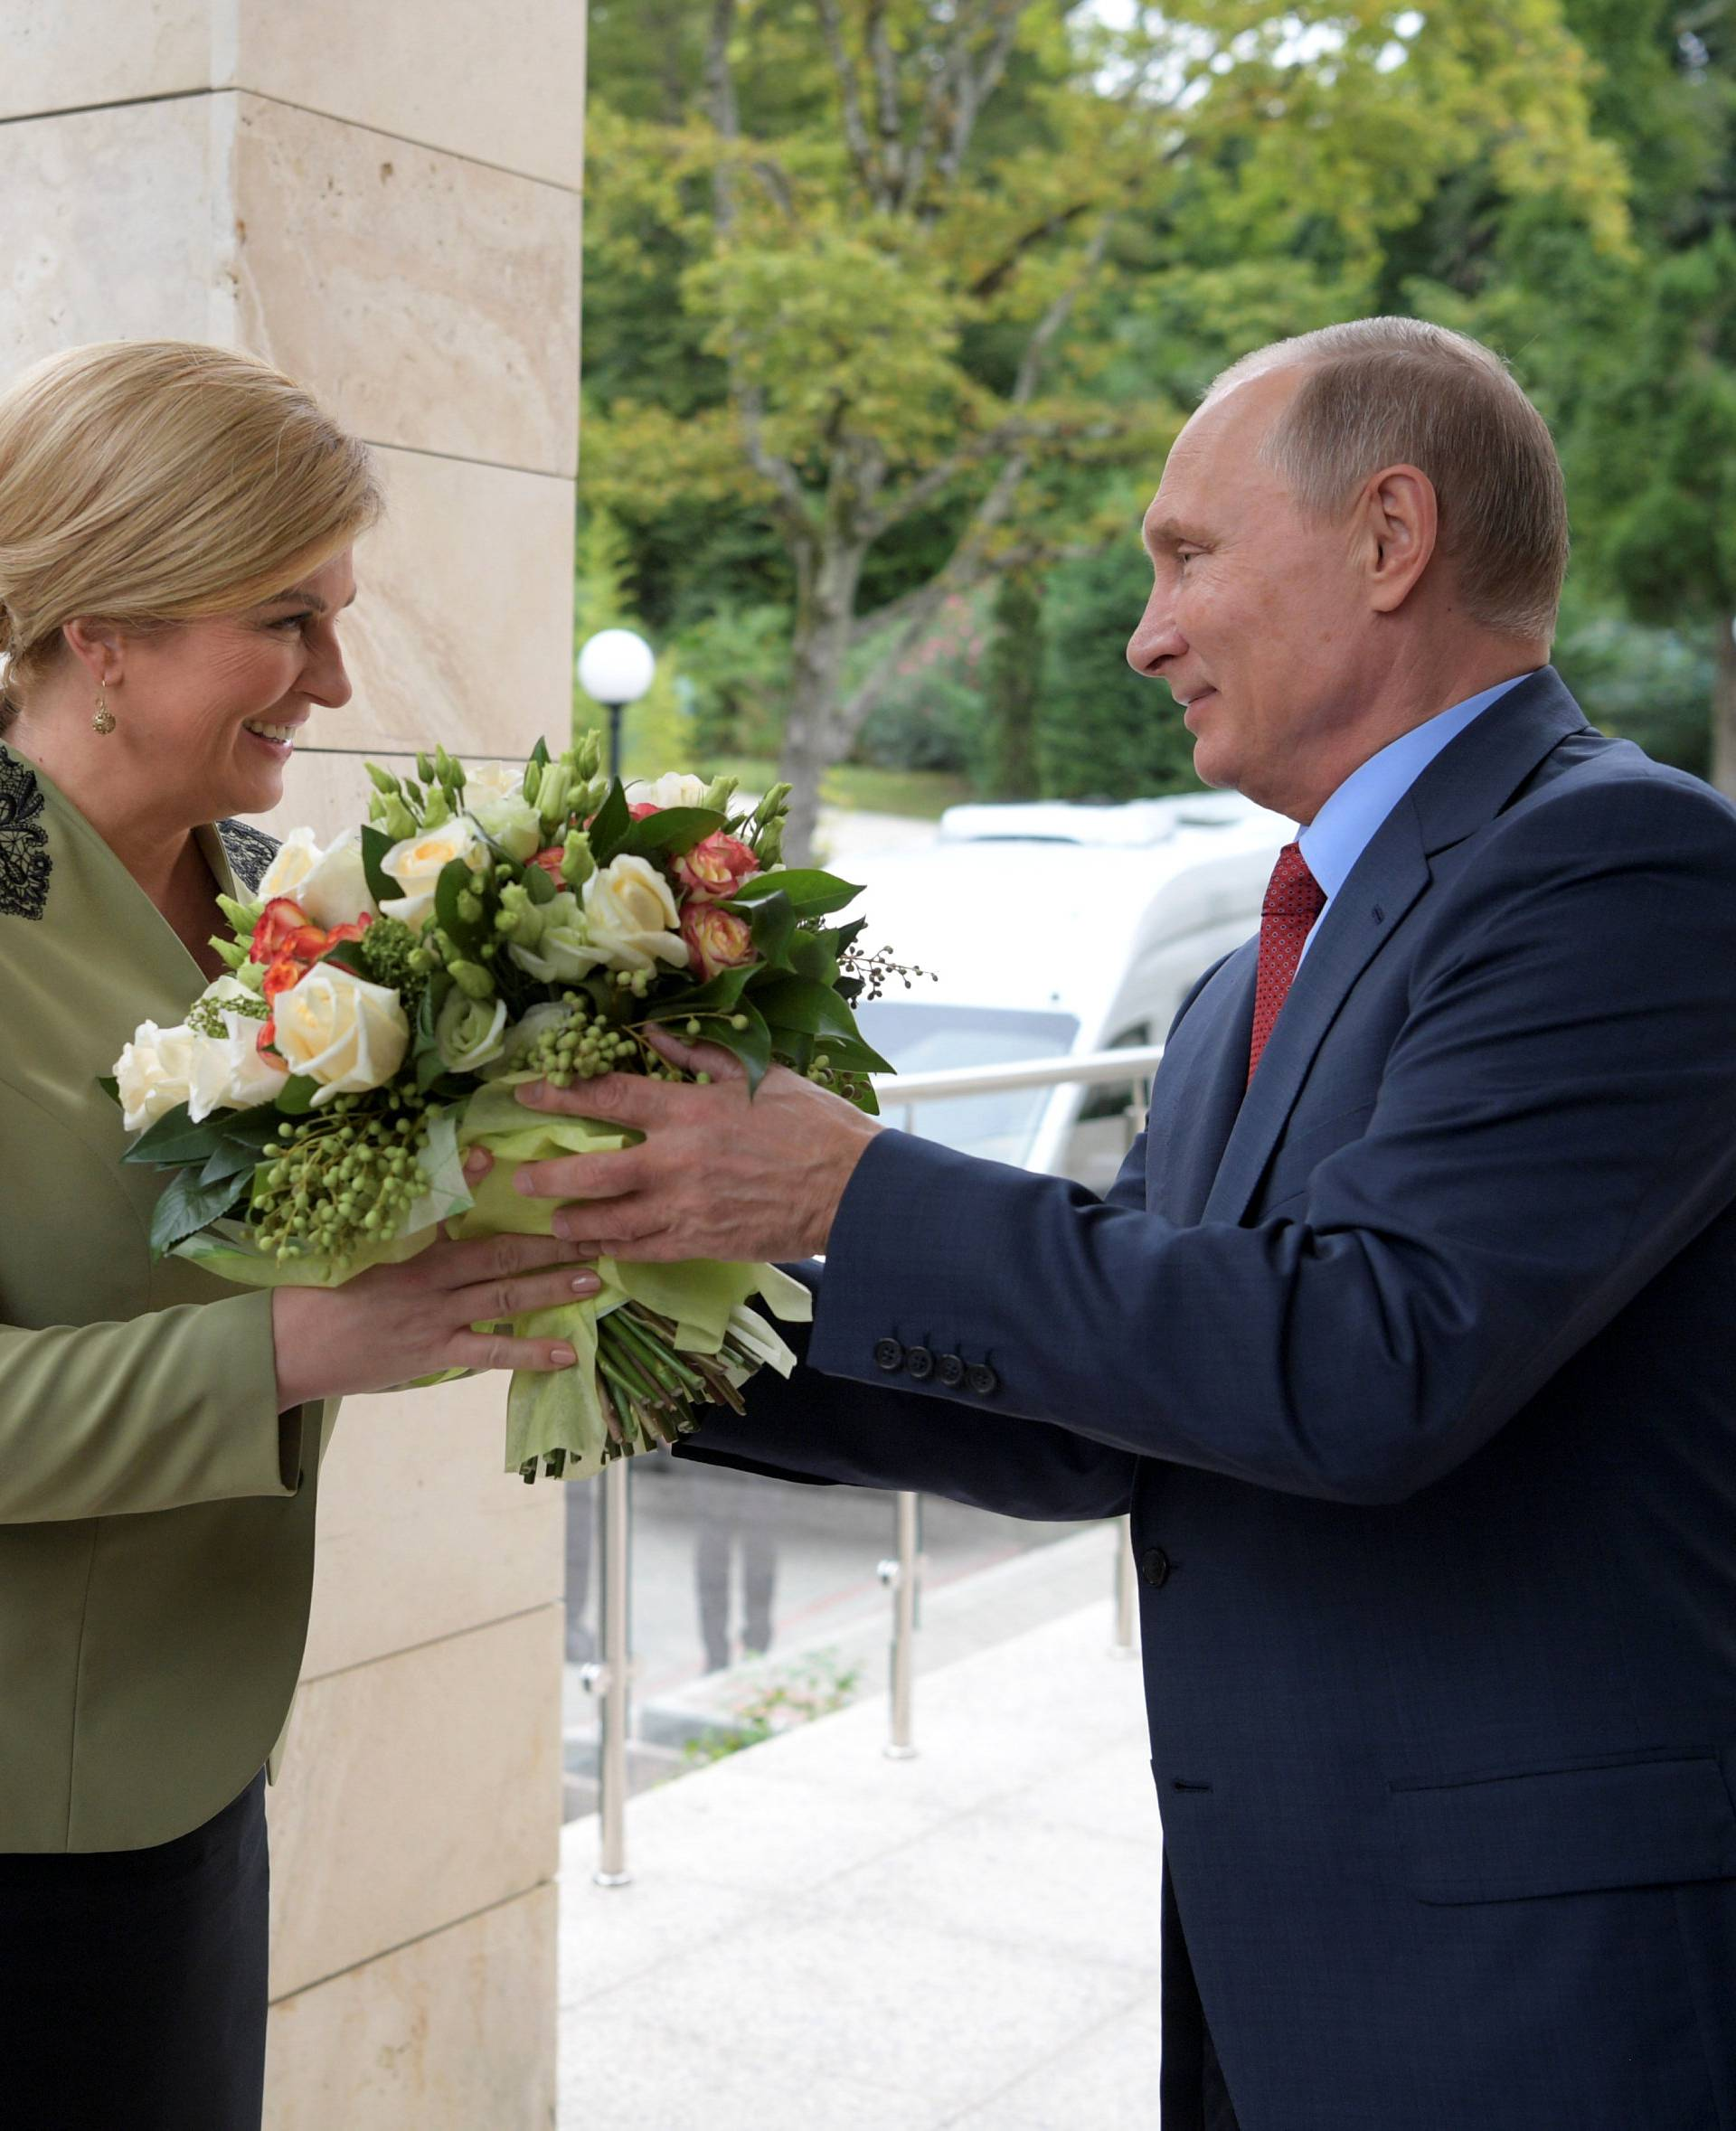 Russian President Vladimir Putin presents flowers to Croatian President Kolinda Grabar-Kitarovic during their meeting at the Bocharov Ruchei state residence in Sochi